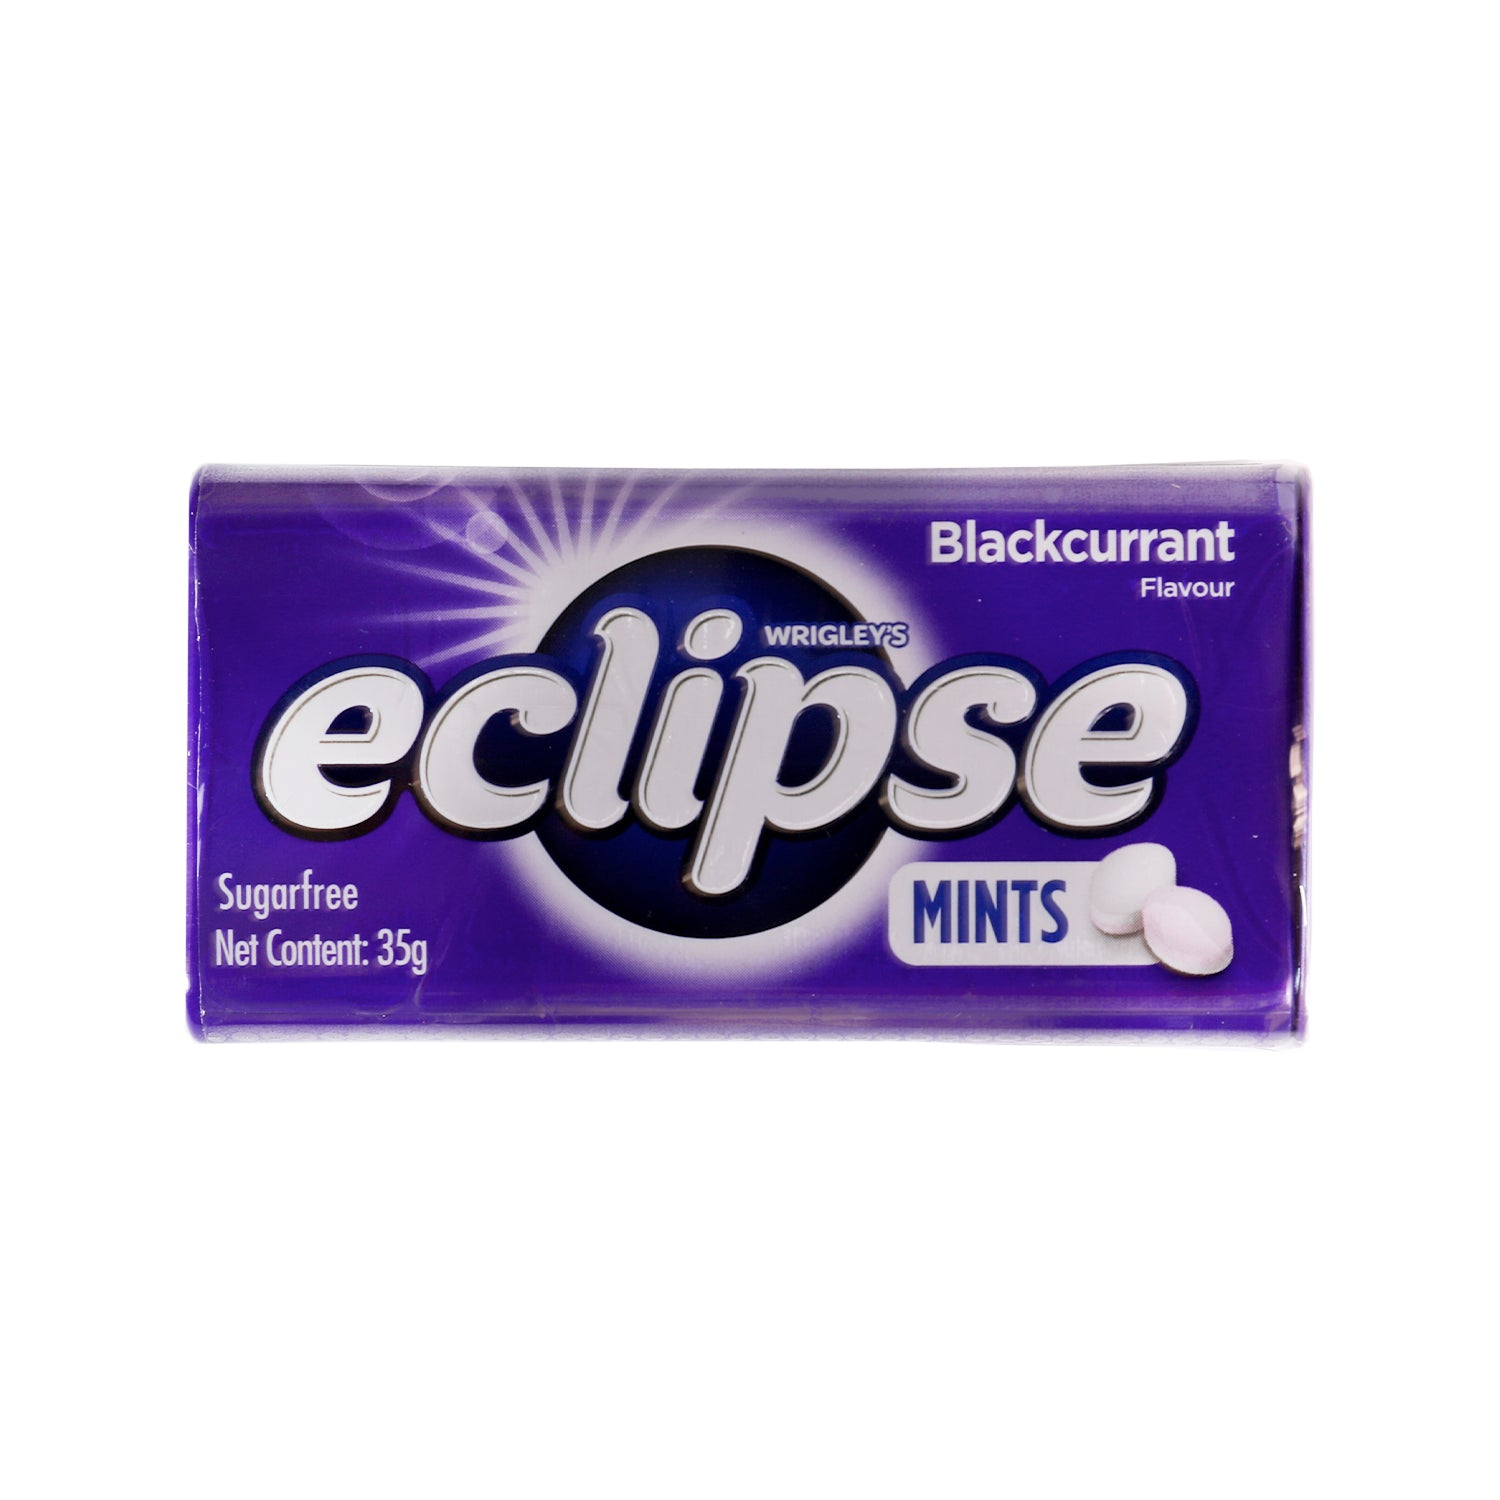 Eclipse Blackcurrant Mints [35g]-Taste Singapore